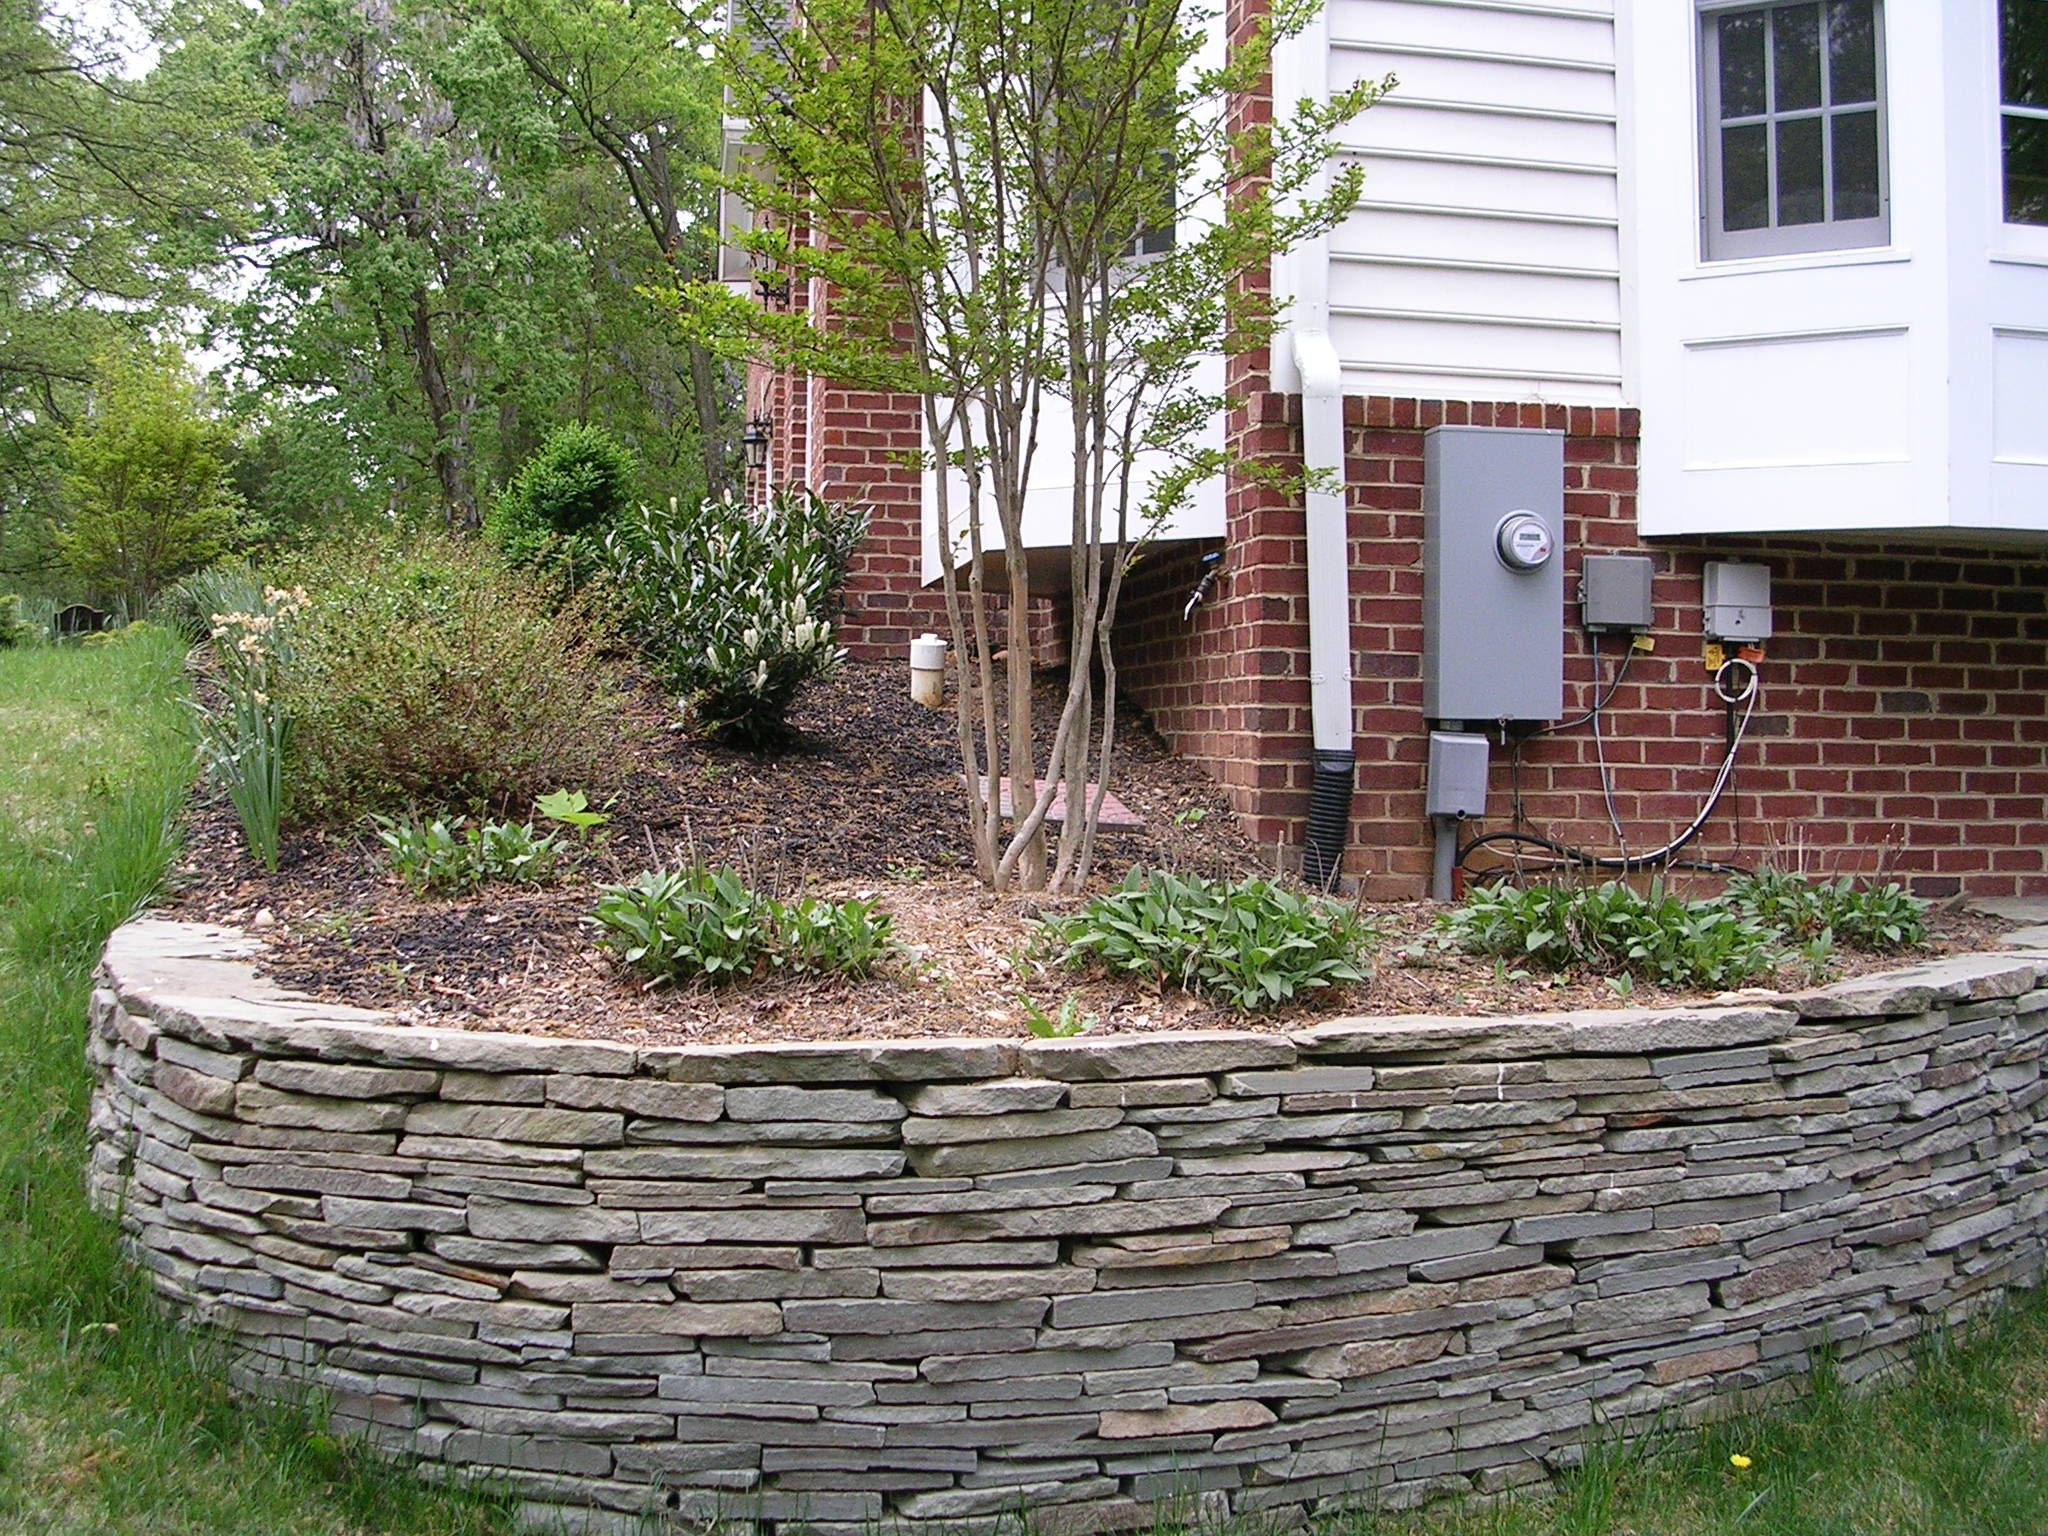 Image detail for Retaining Wall with Landscaping Timbers